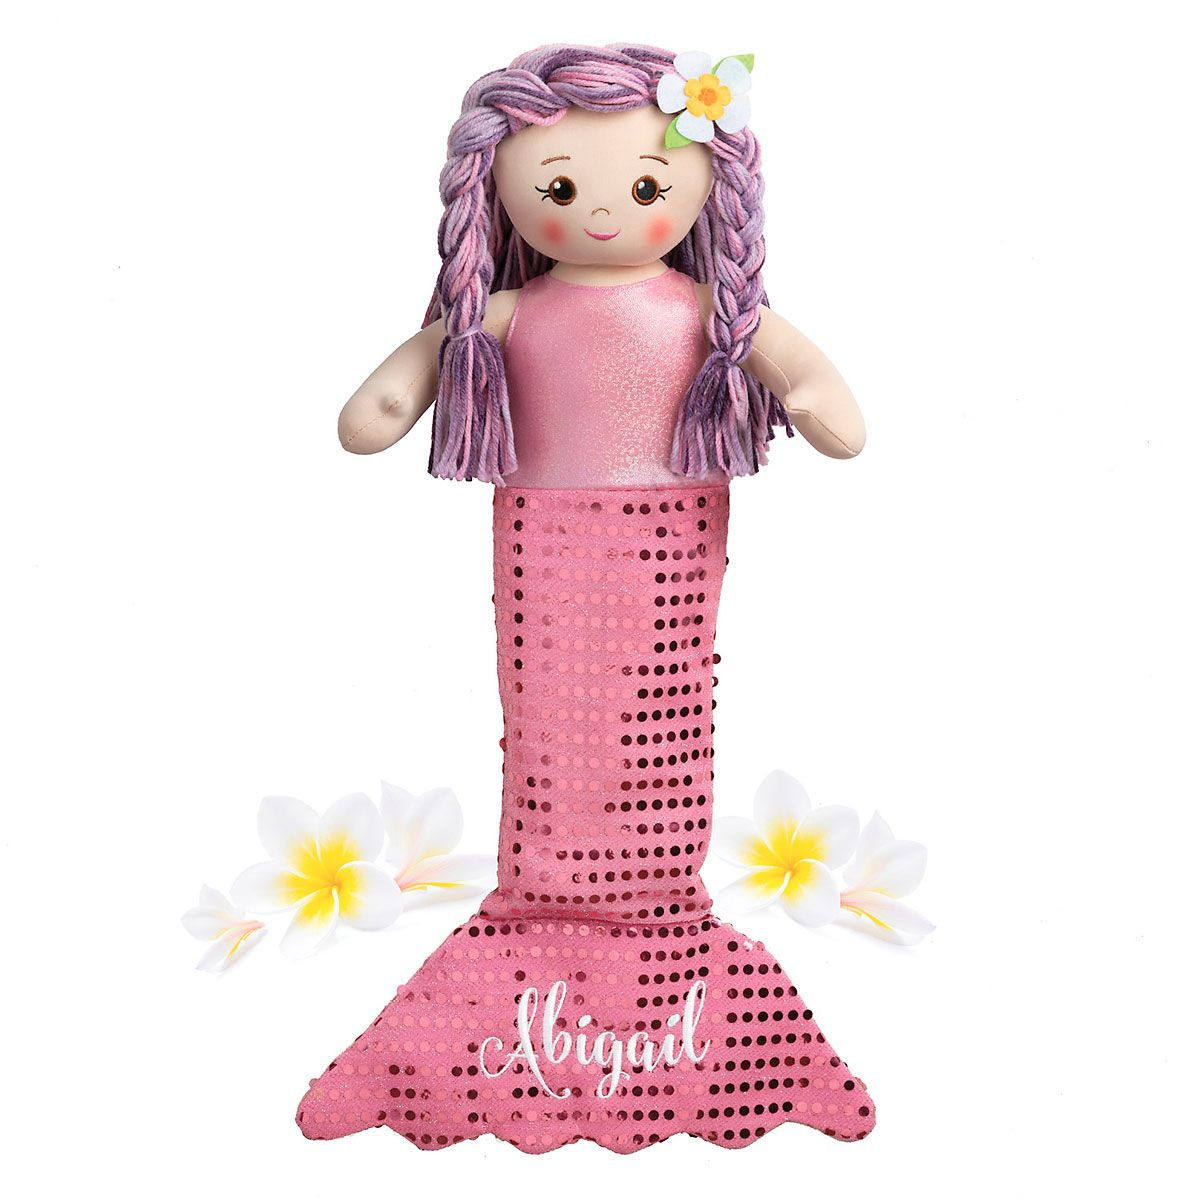 Personalized Mermaid Rag Doll